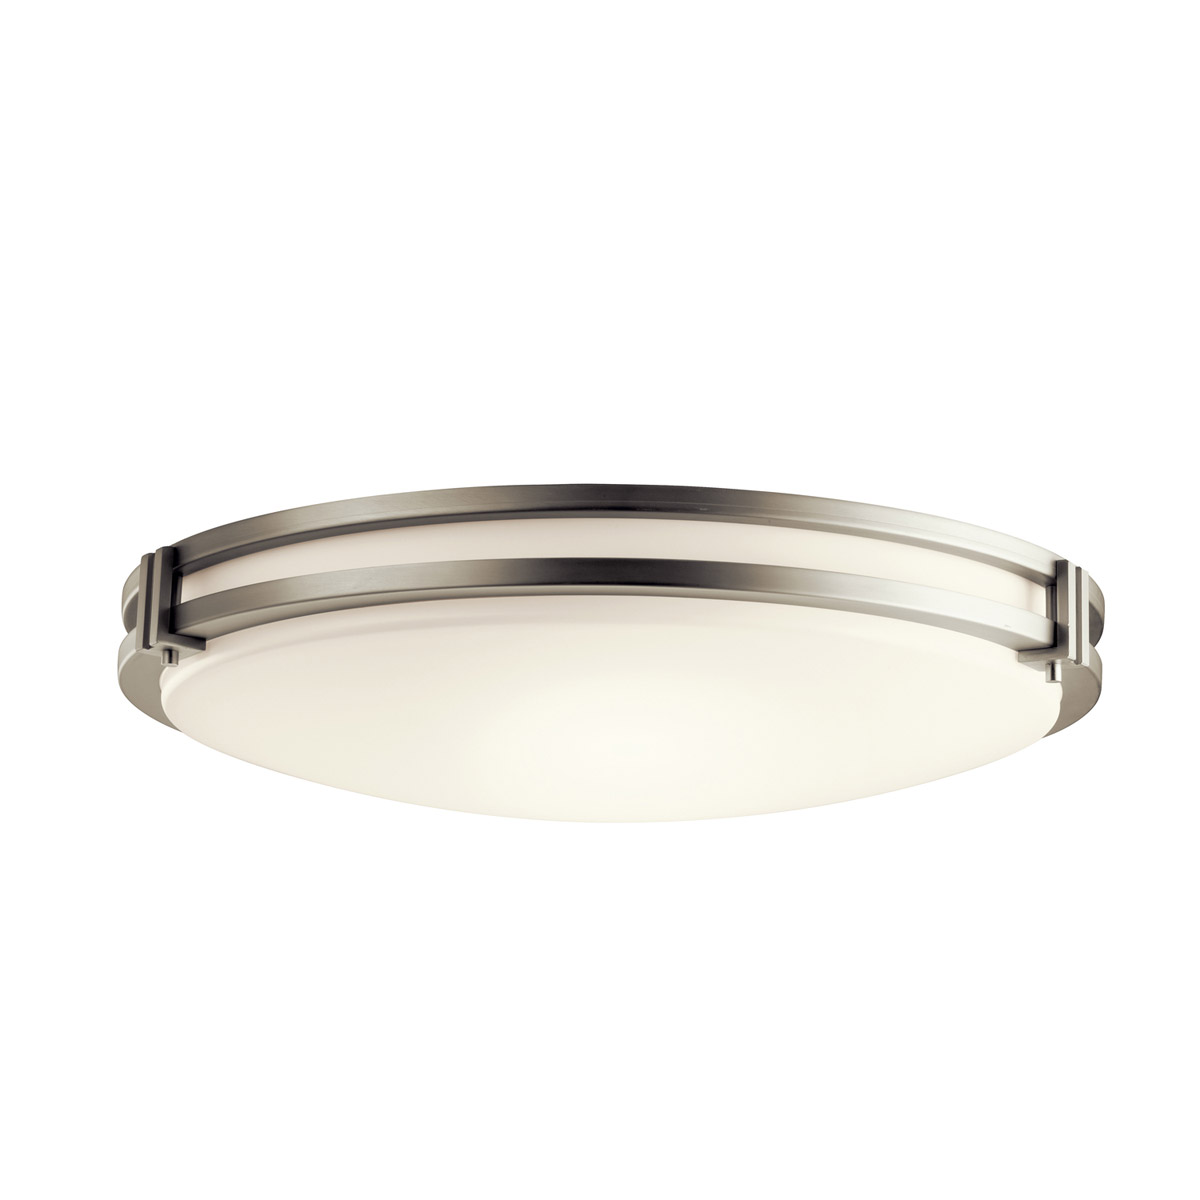 Kichler Lighting Signature 3 Light Fluorescent Flush Mount in Brushed Nickel 10828NI